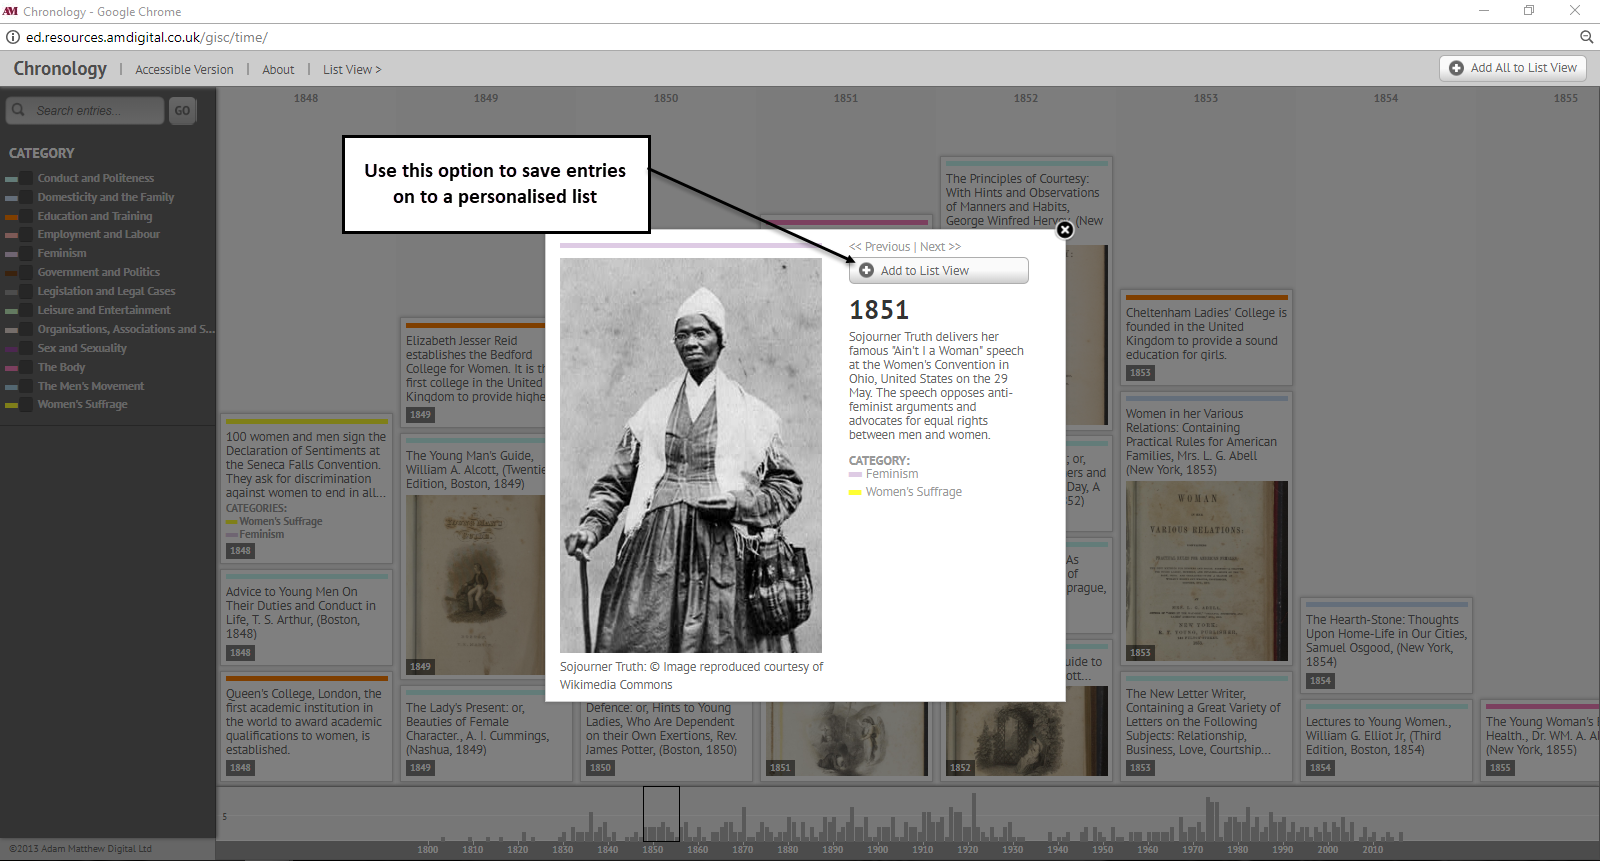 View of option to save entries on to a personalised list in the interactive chronology